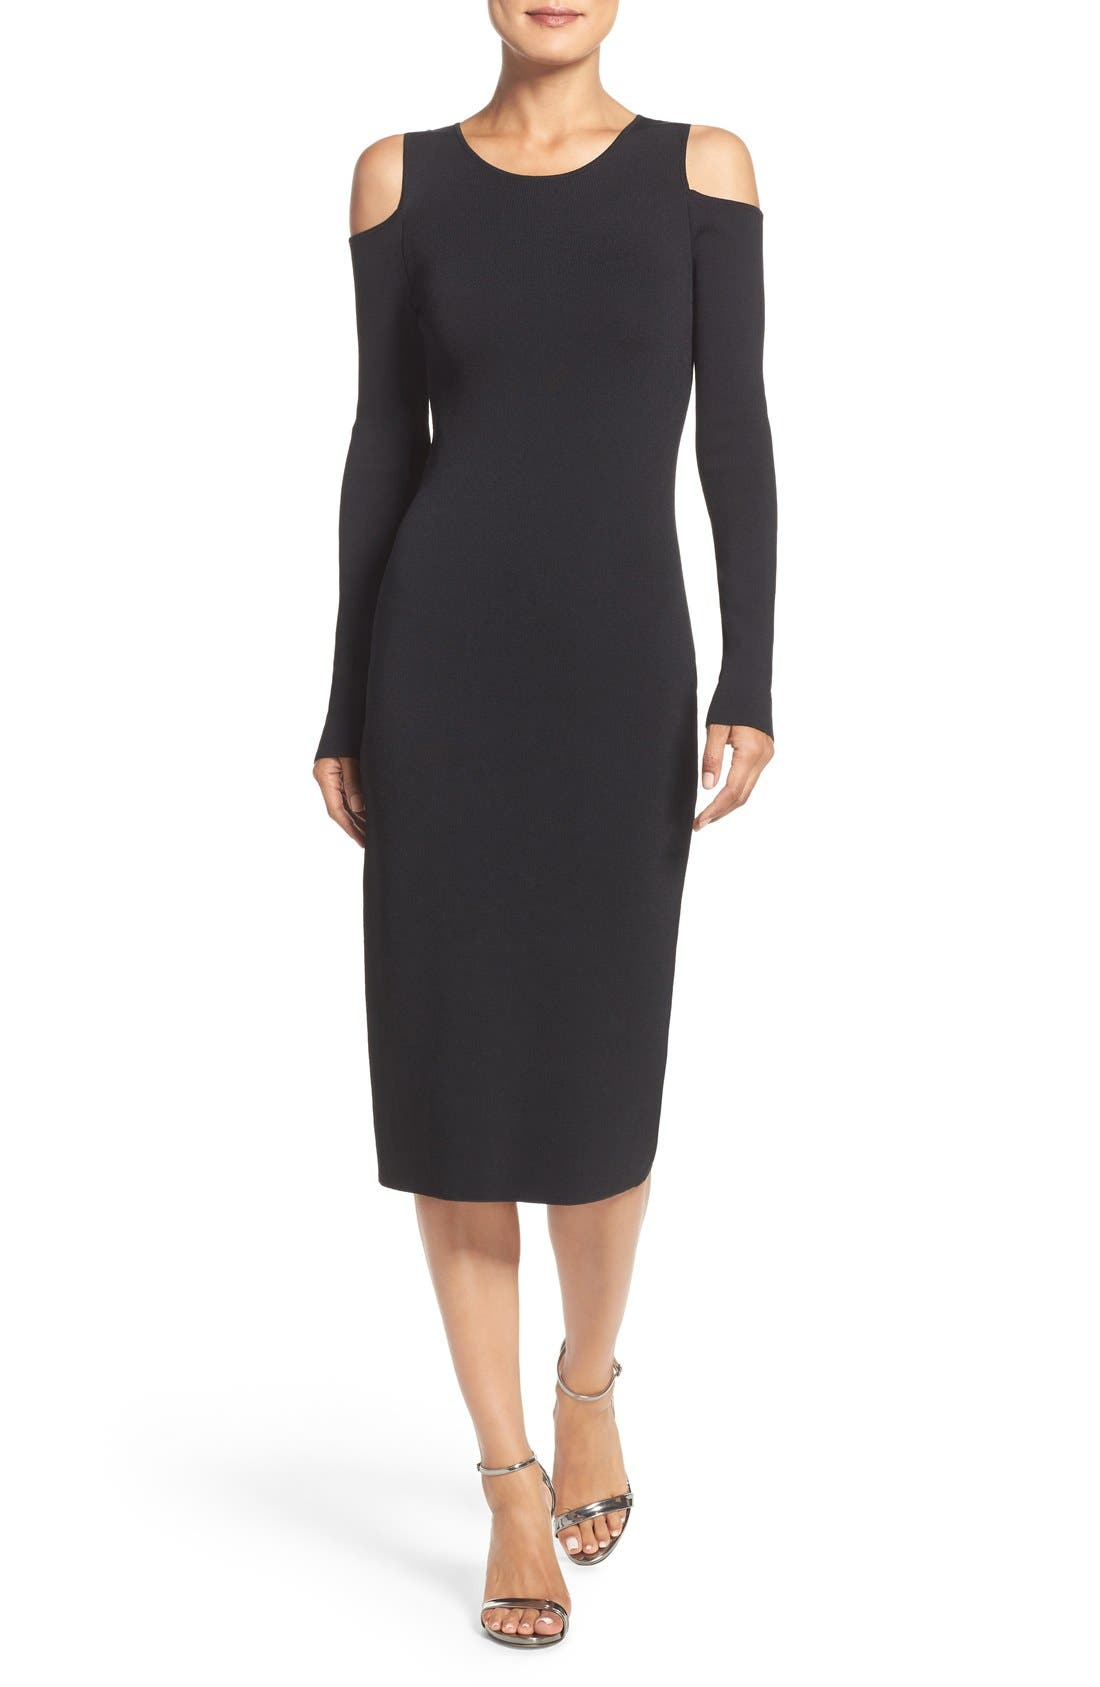 Alternate Image 1 Selected - Eliza J Cold Shoulder Knit Body-Con Dress (Regular & Petite)